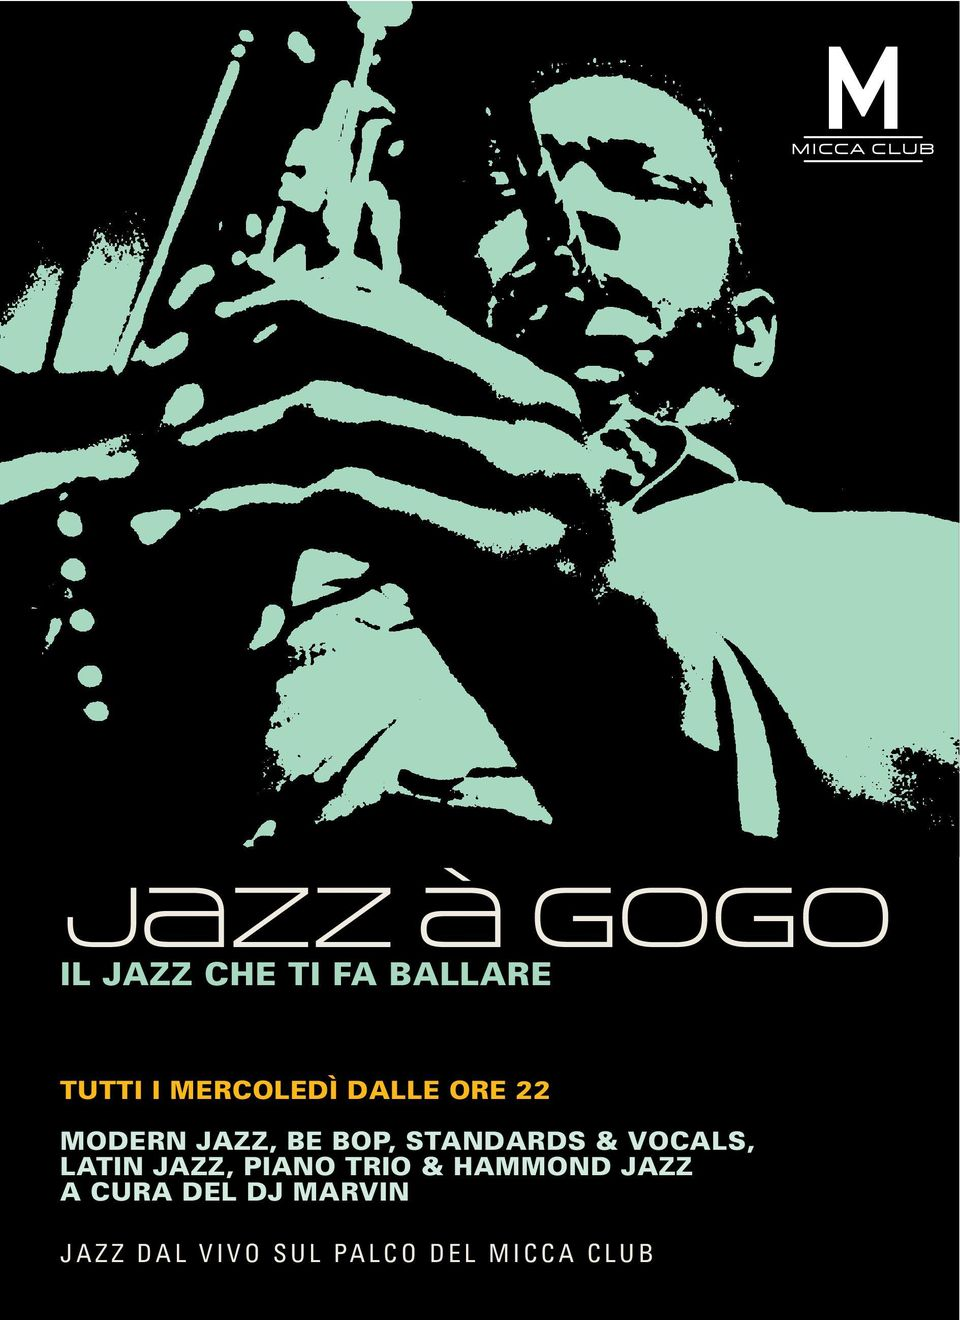 LATIN JAZZ, PIANO TRIO & HAMMOND JAZZ A CURA DEL DJ